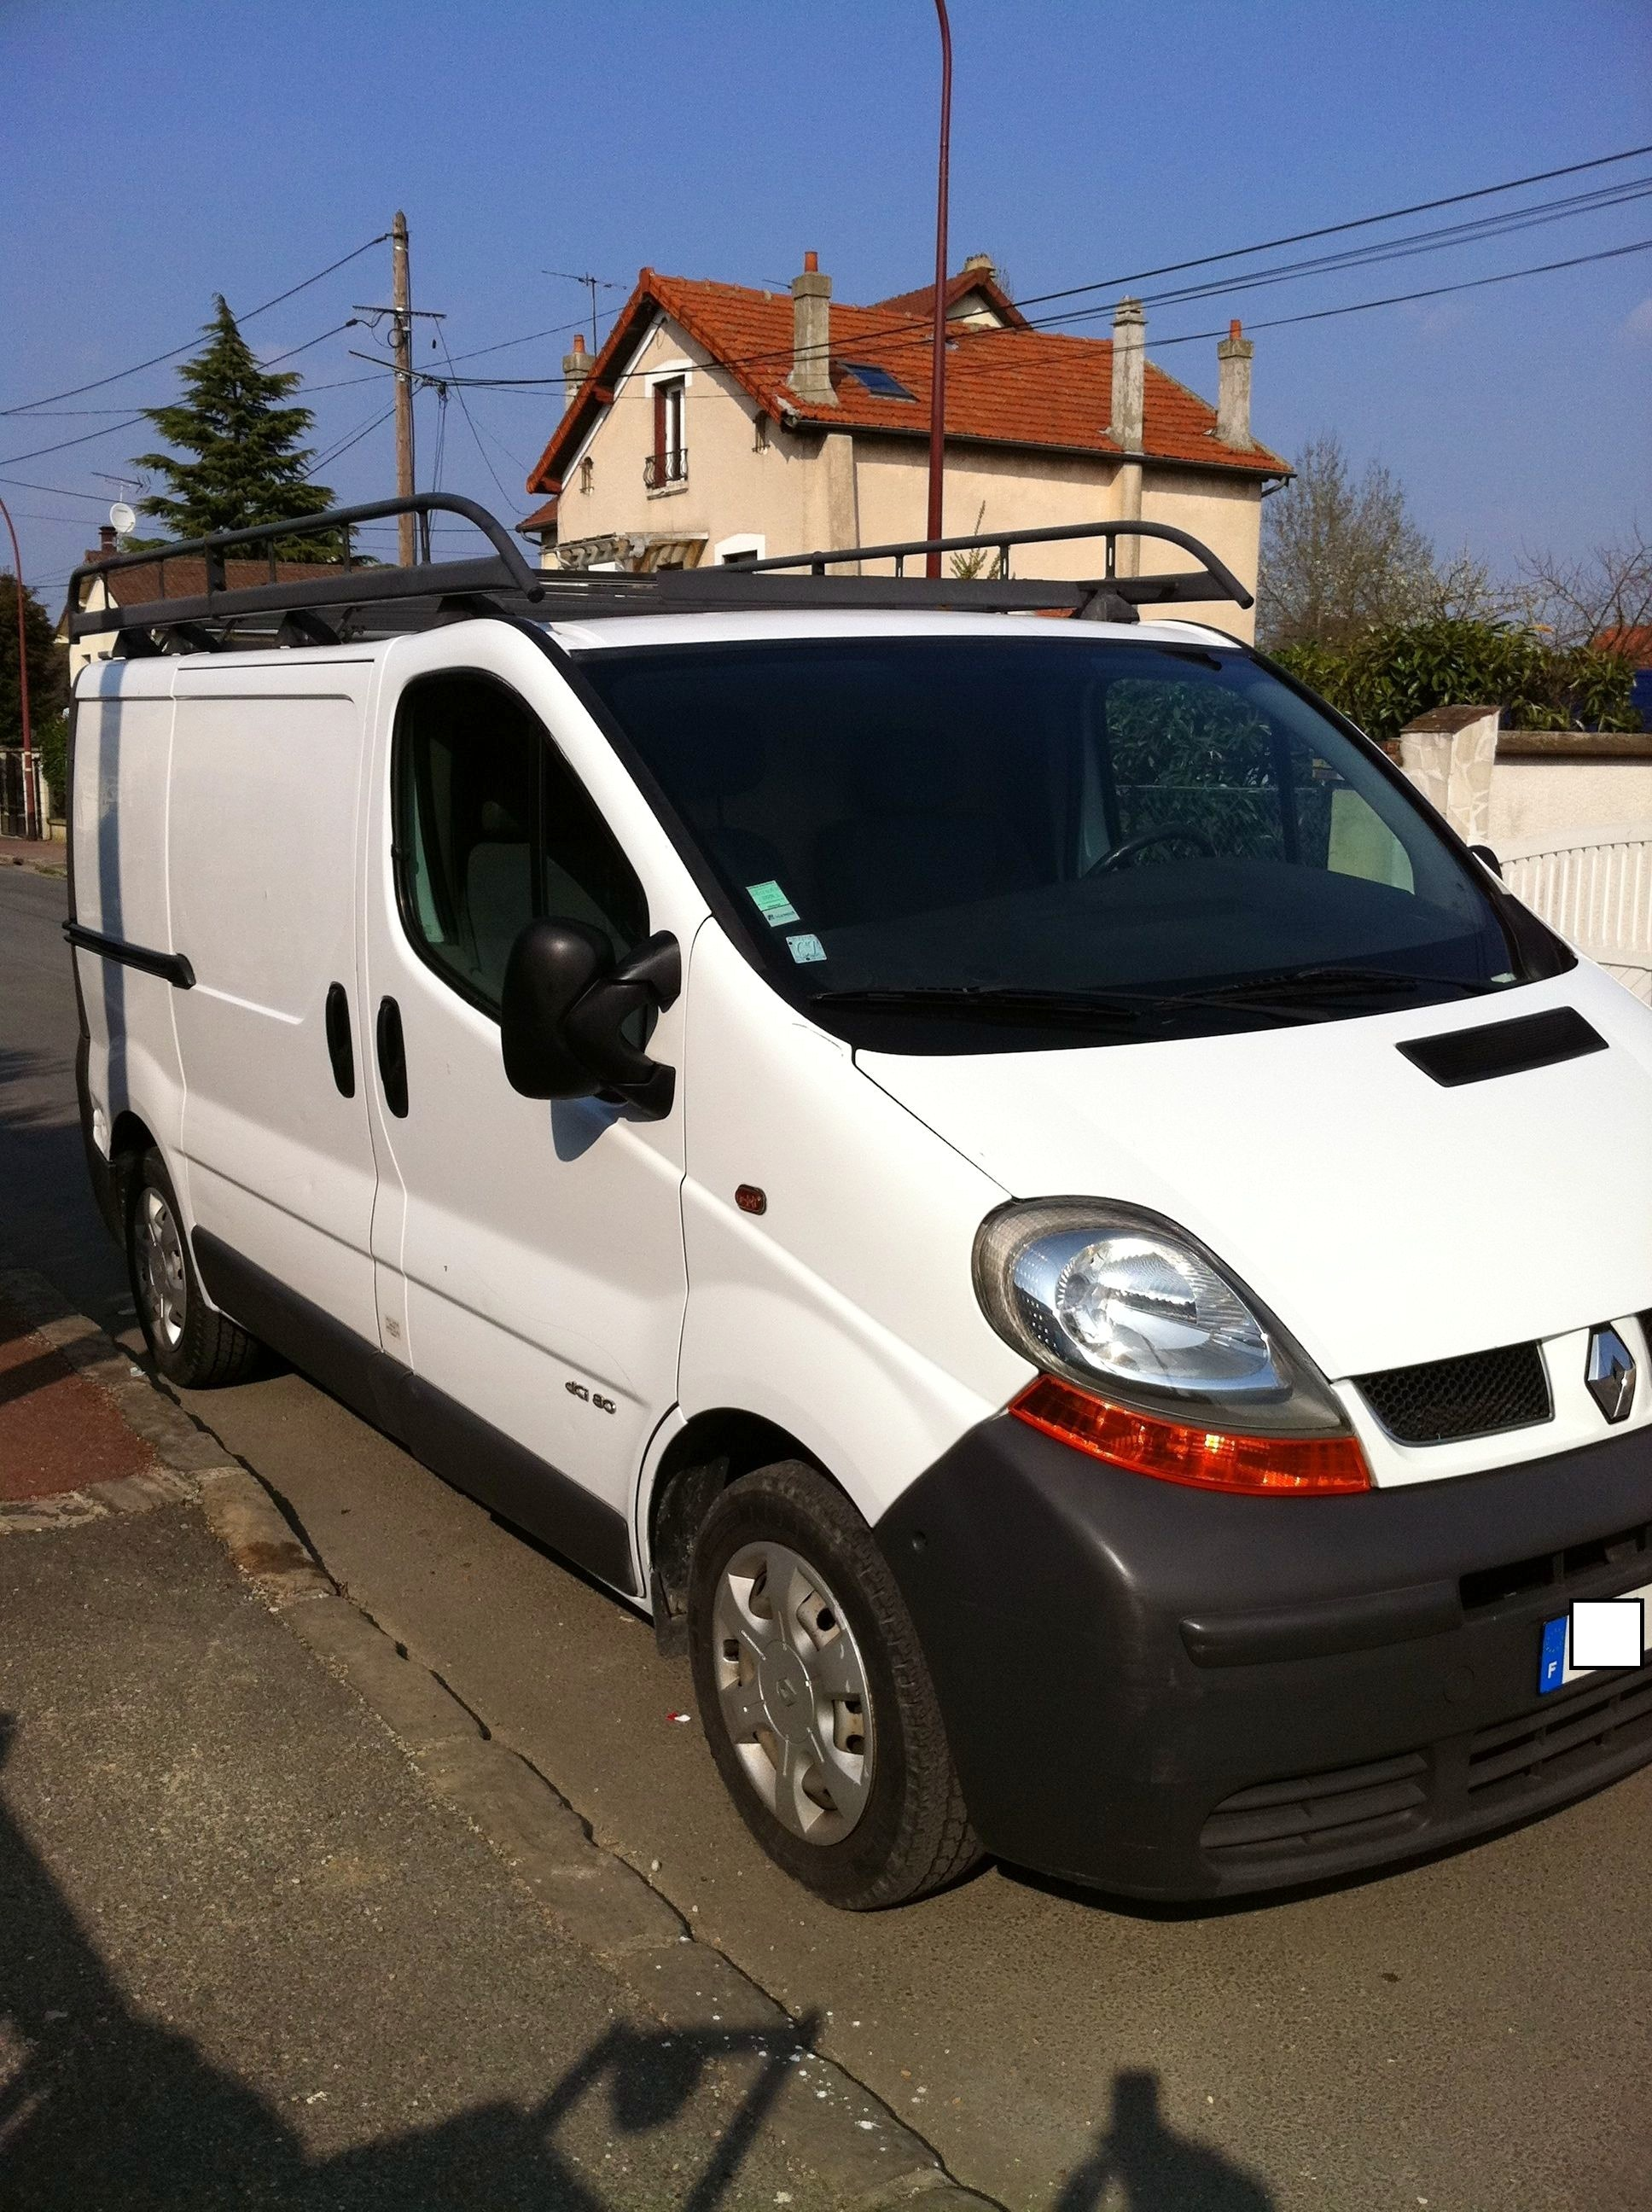 Renault trafic 82 ch DCI L1H1 fourgon, 2003, Diesel - Utilitaire Angers (49)